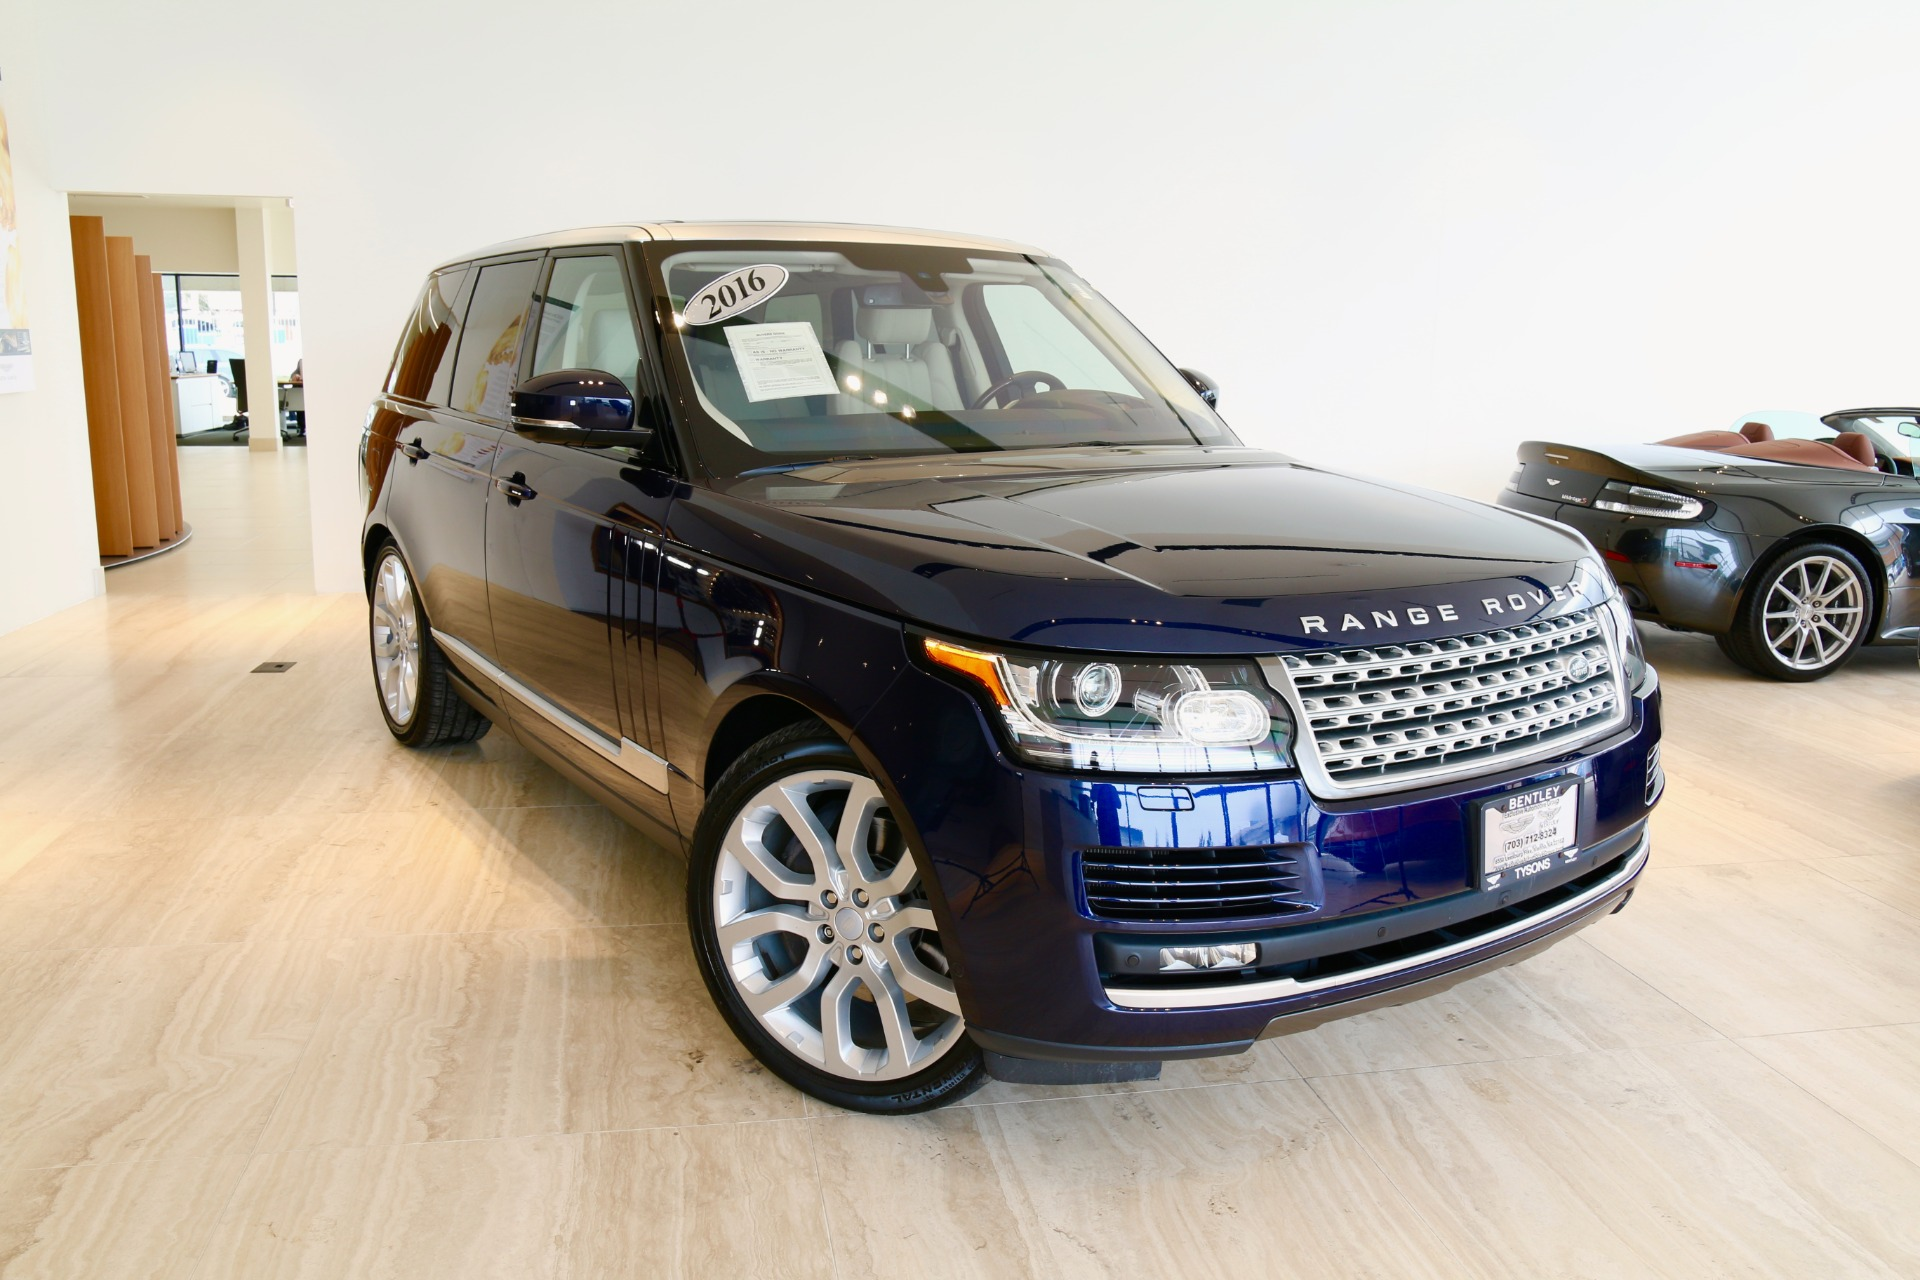 2016 Land Rover Range Rover Supercharged Stock 7NC B for sale